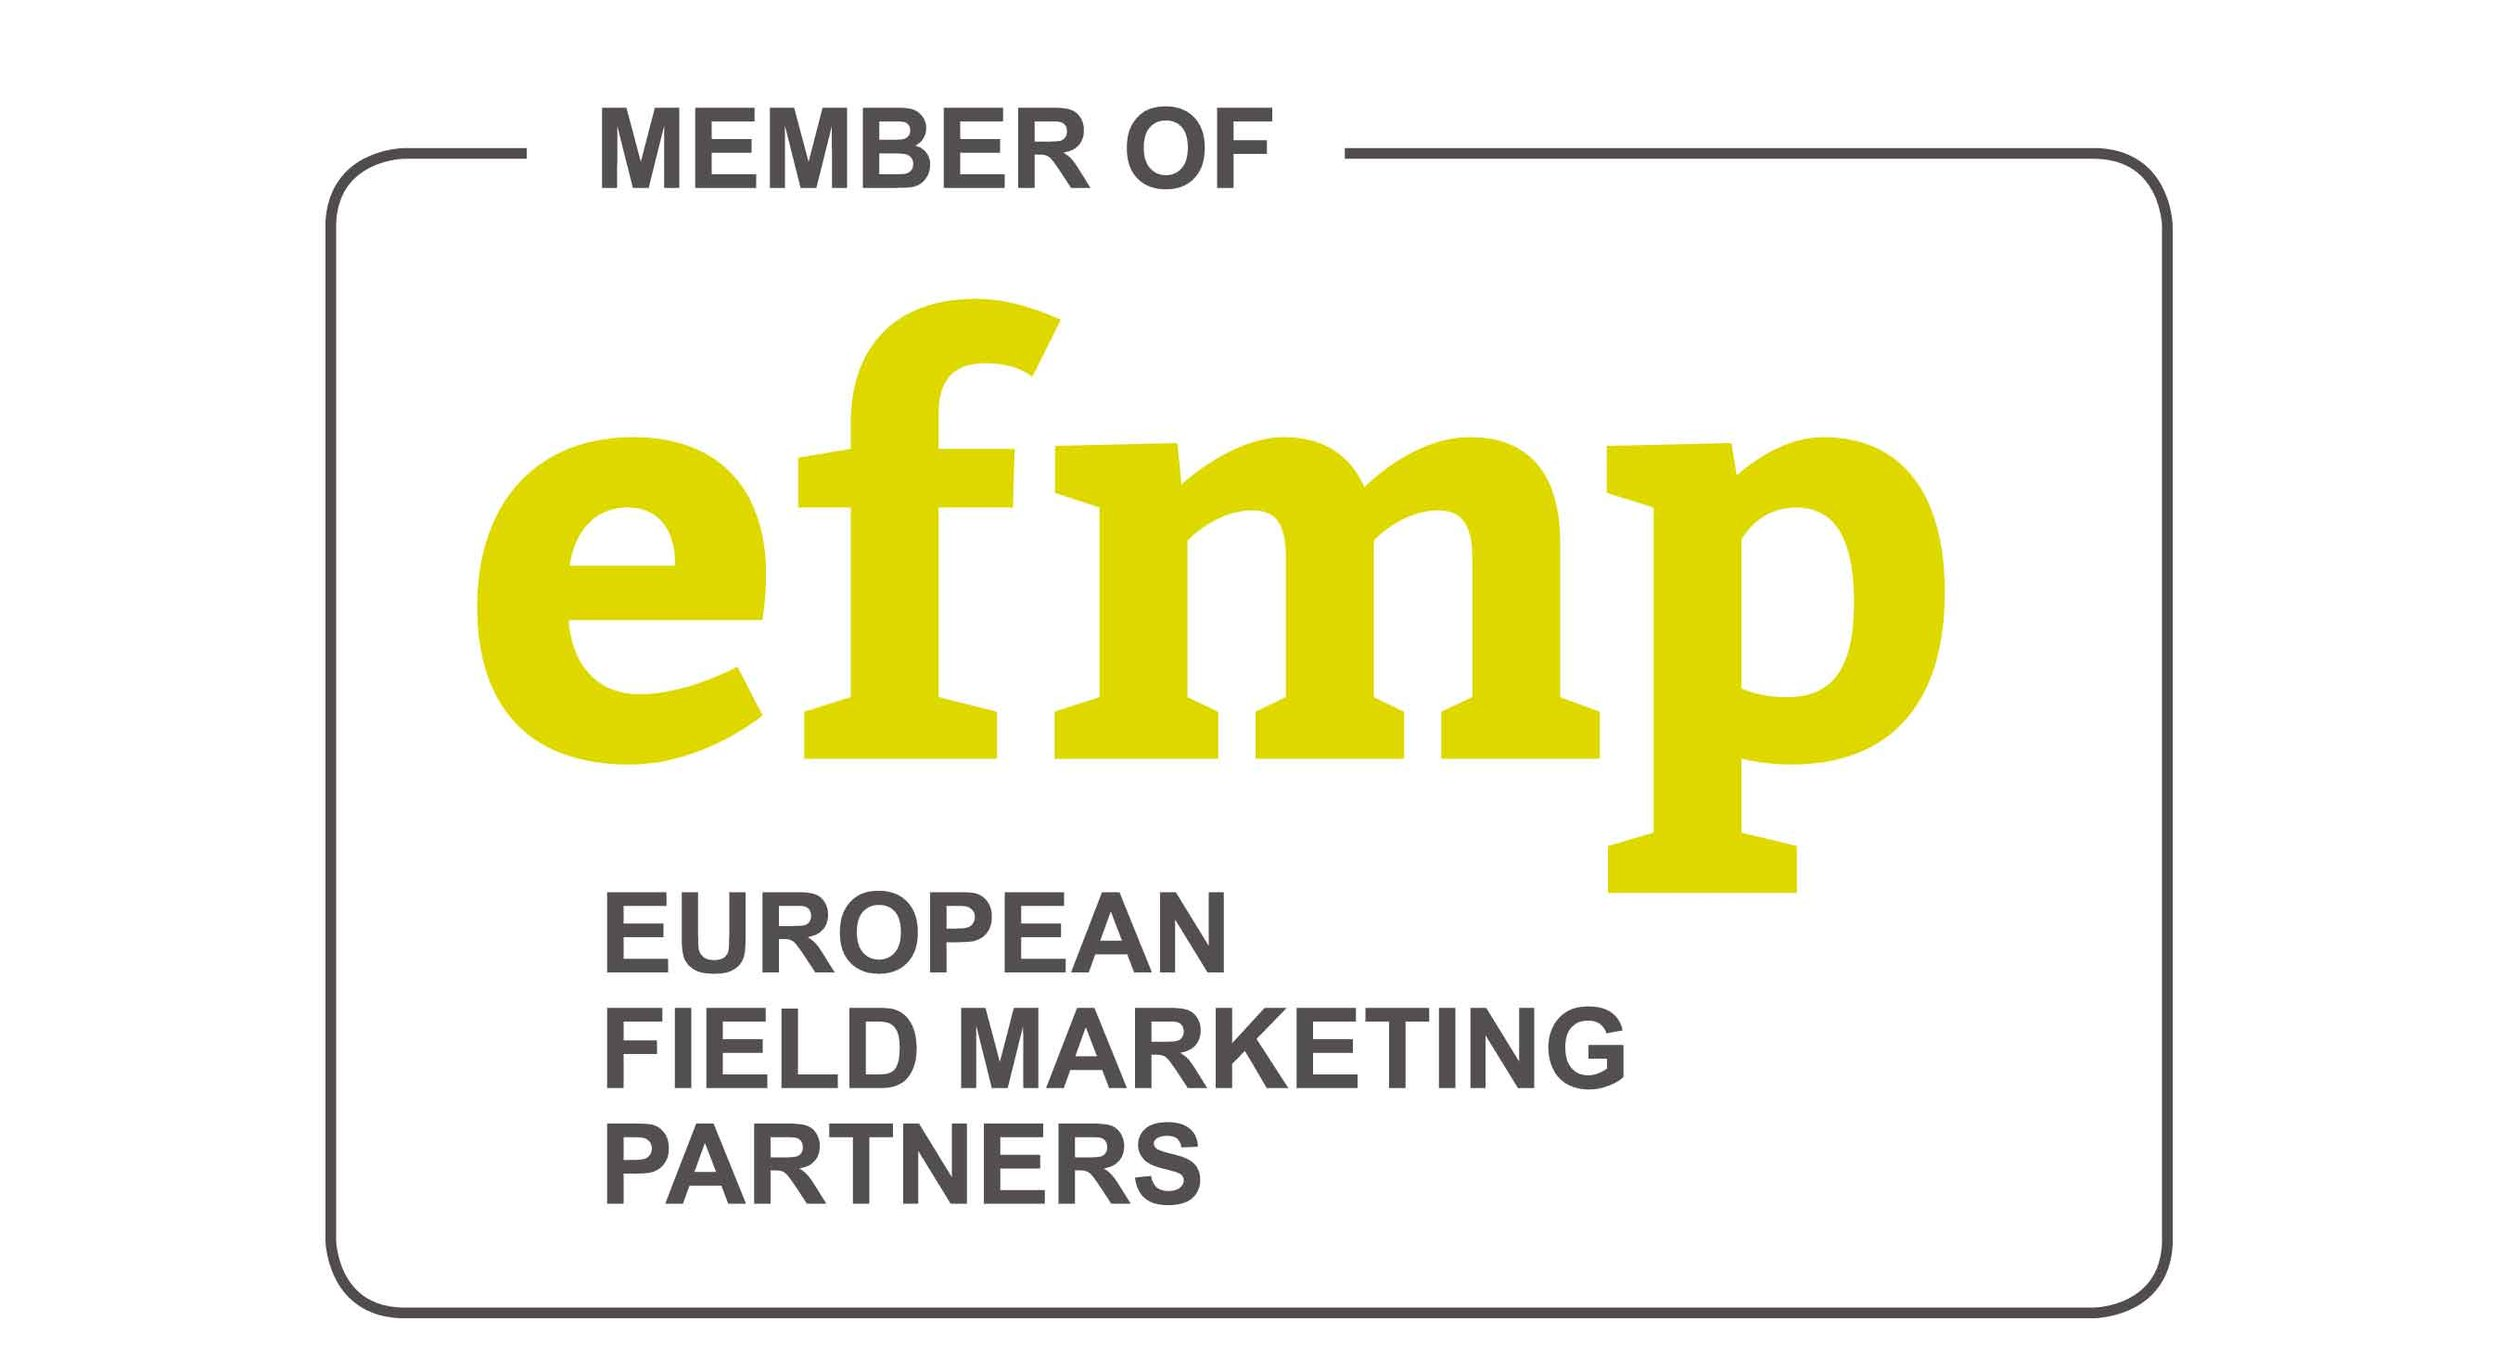 European field marketing partners